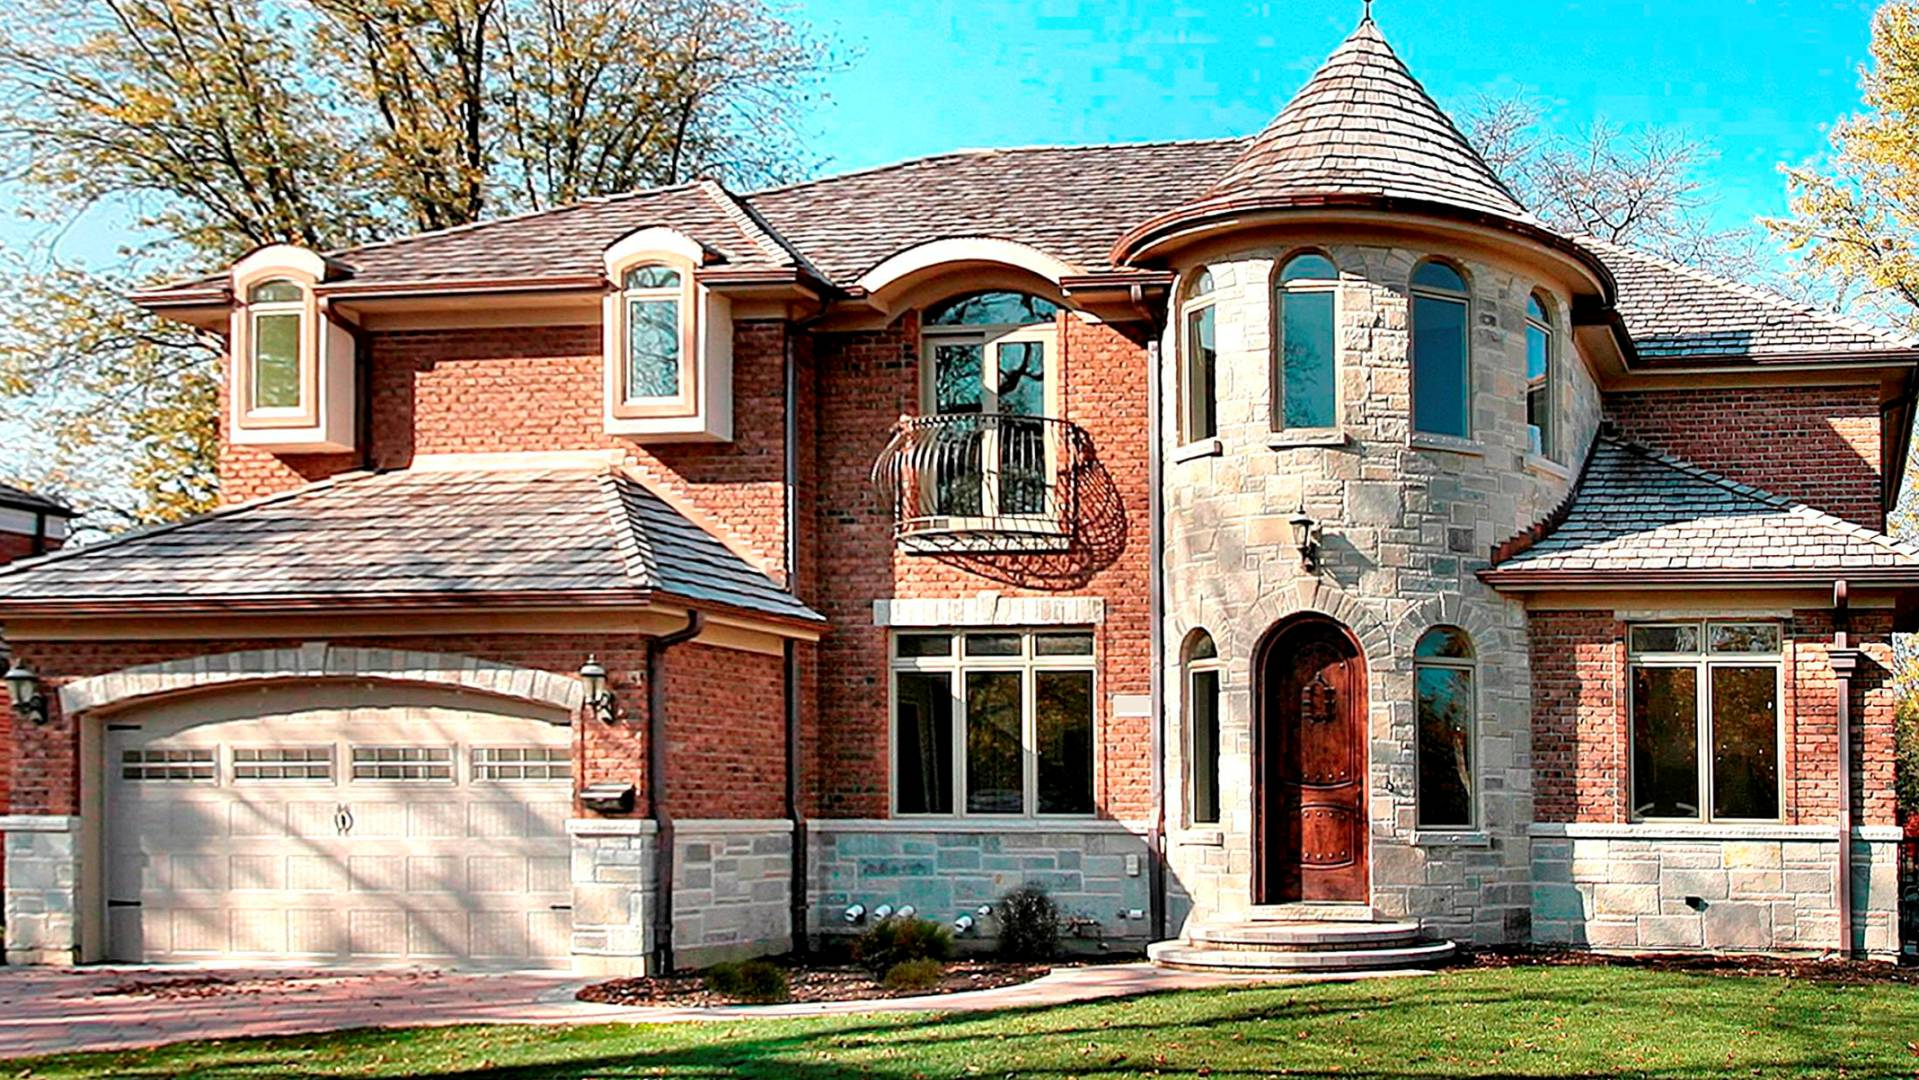 Surrey Ln House in Glenview by Greenleaf Developers - front view